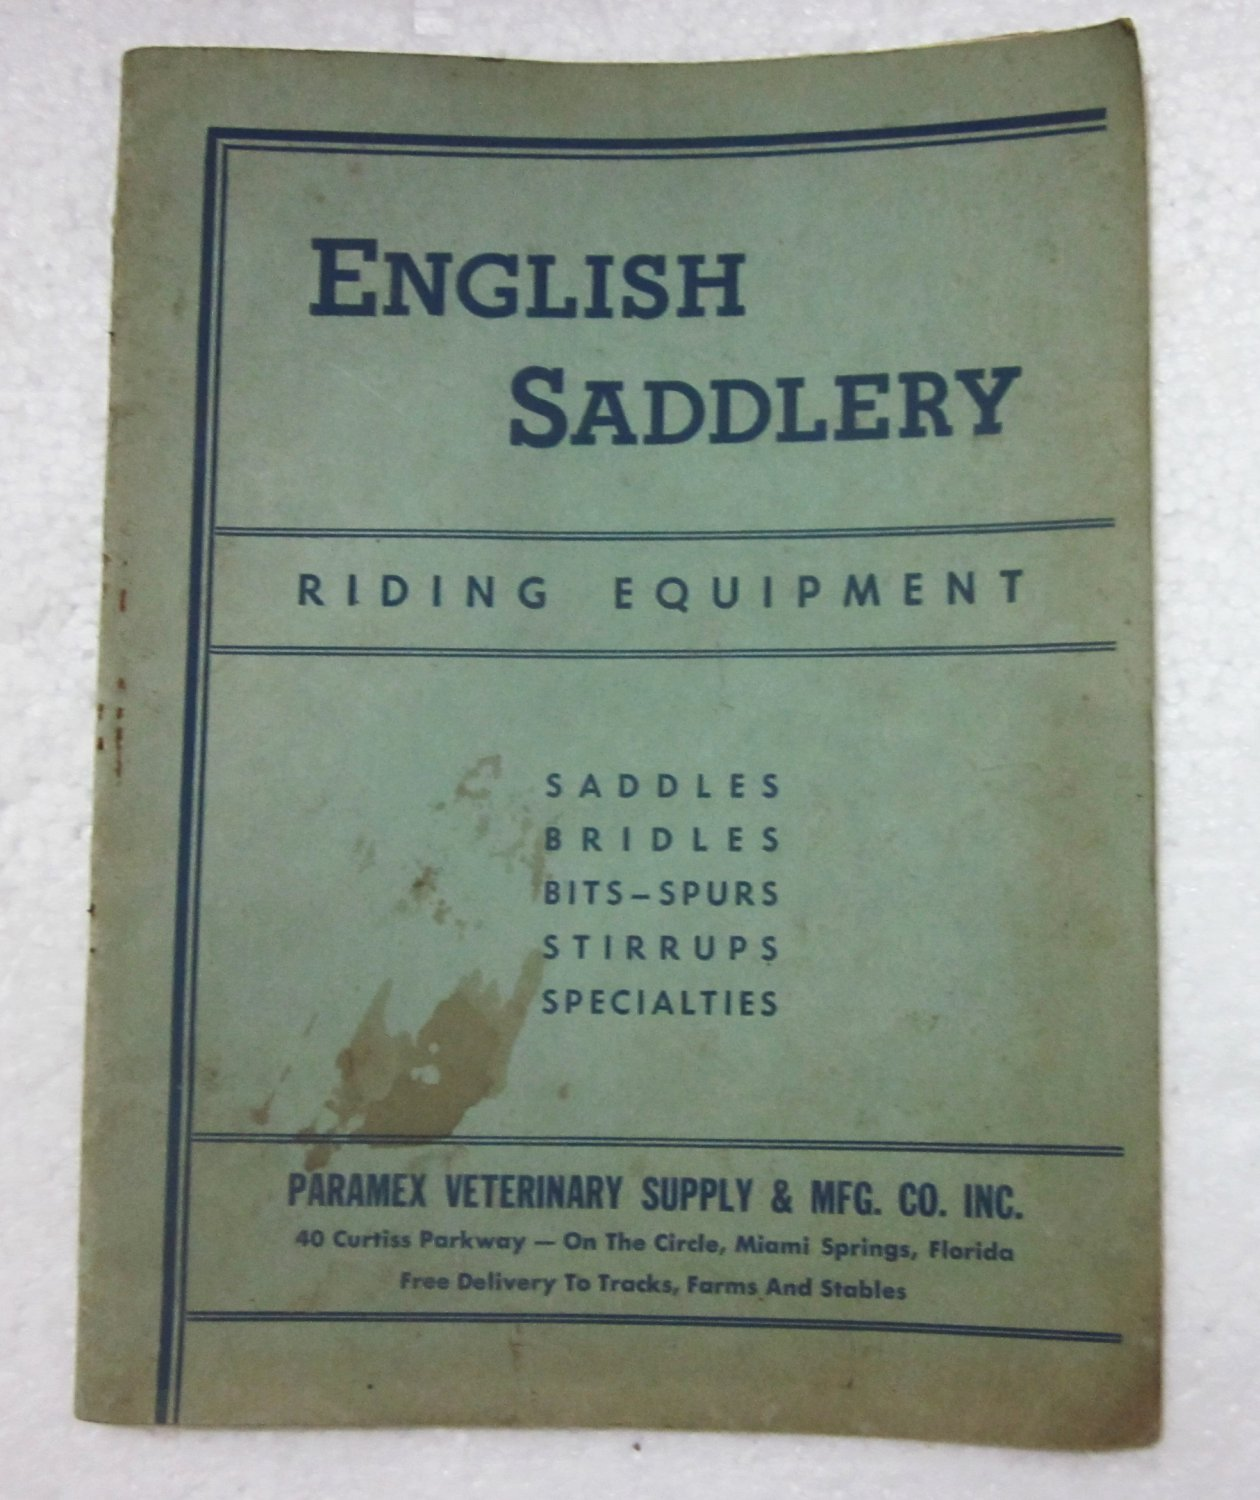 Vintage 1958 ENGLISH SADDLERY Catalogue- Saddles Bridles Bits-Spurs Stirrups